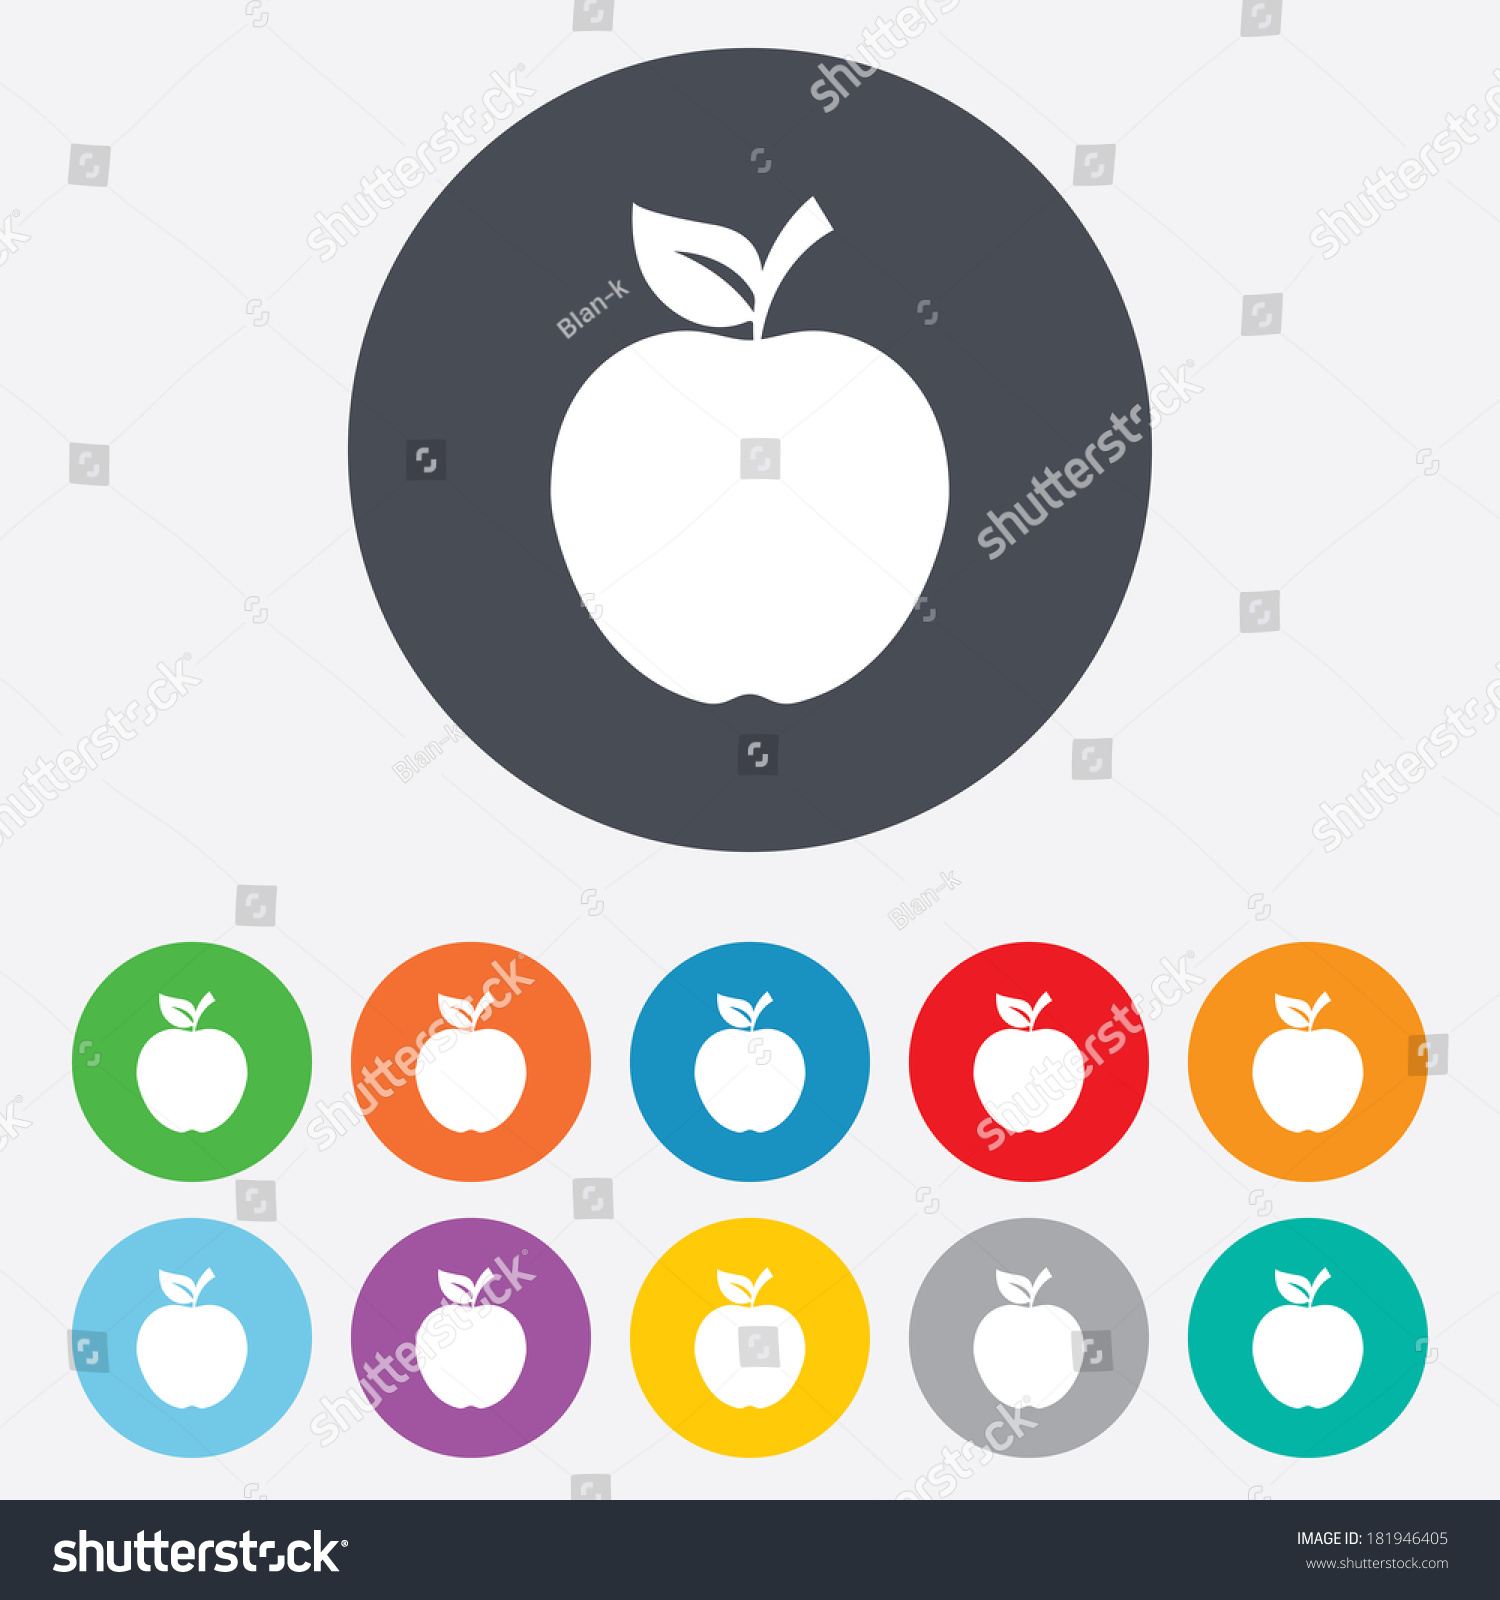 apple sign icon. fruit with leaf symbol. round squares buttons with